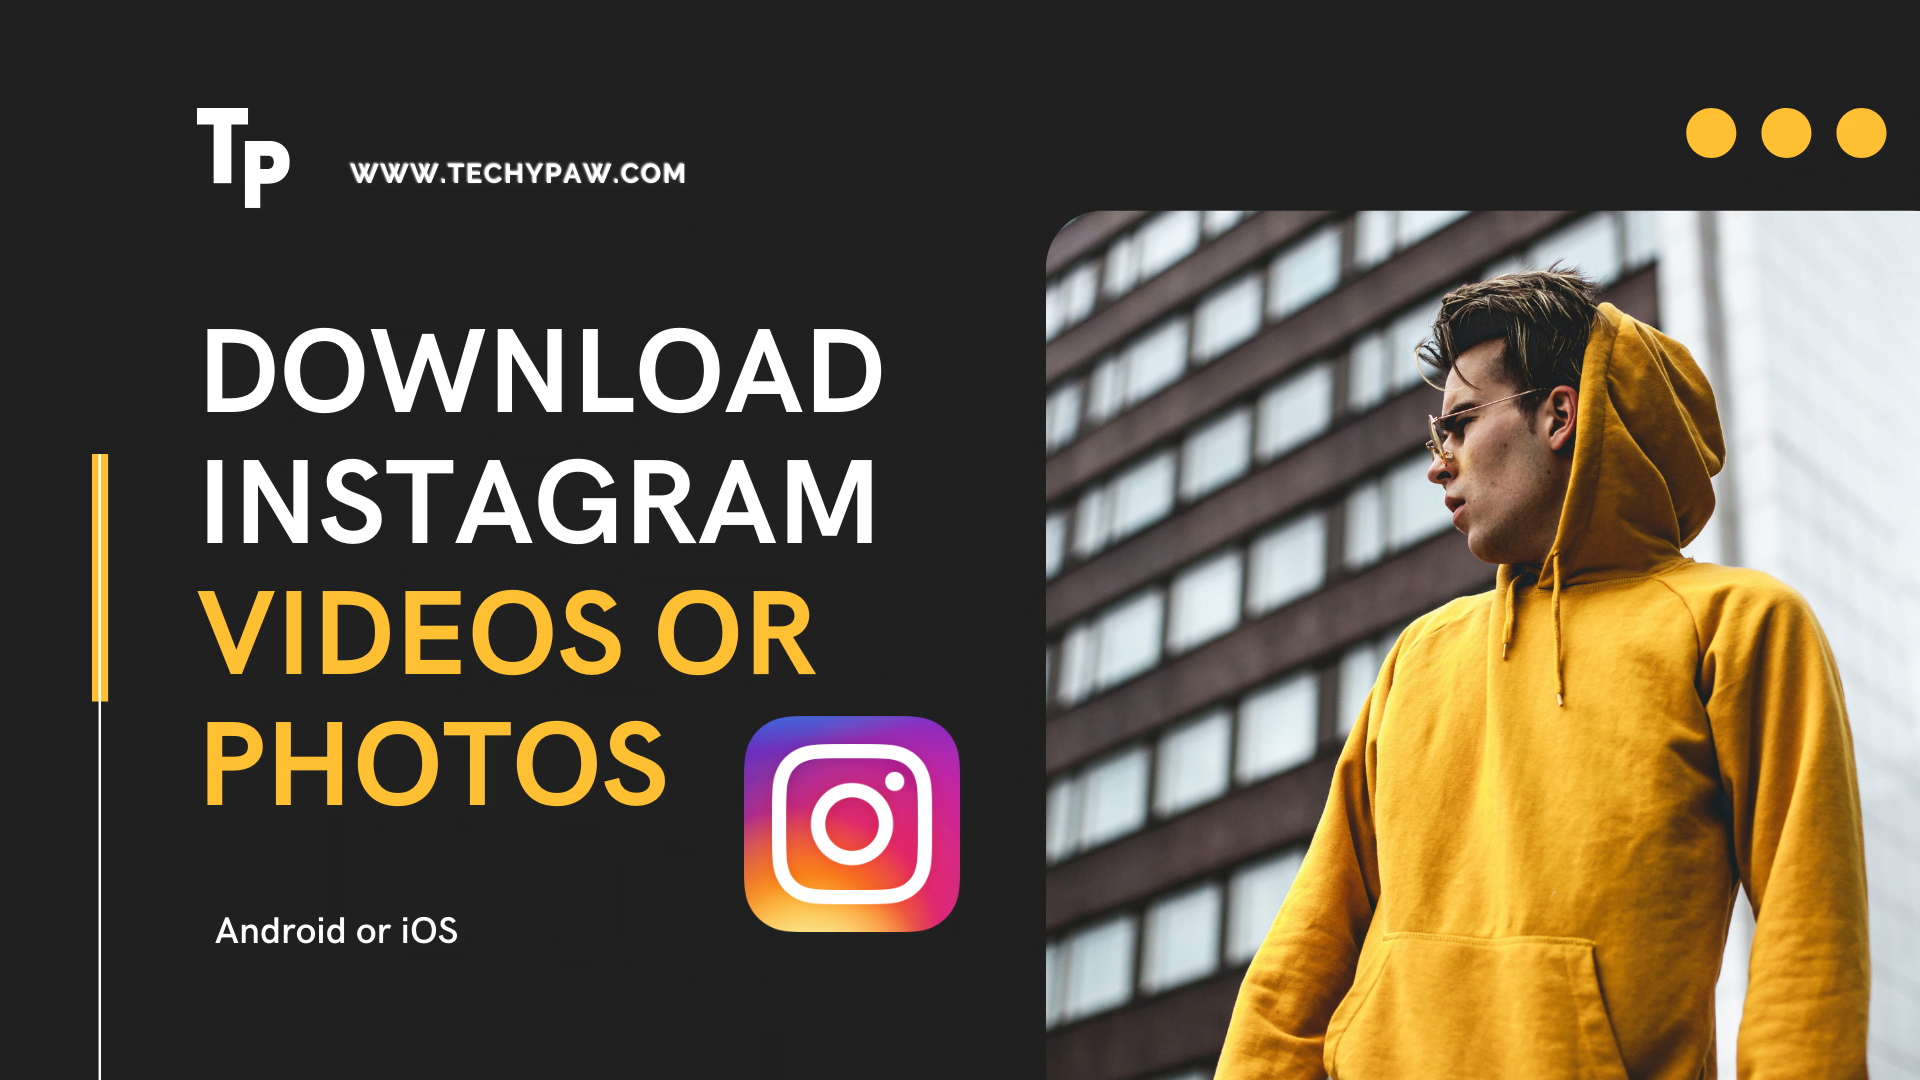 How to Download Instagram Videos or Photos On Android or iOS